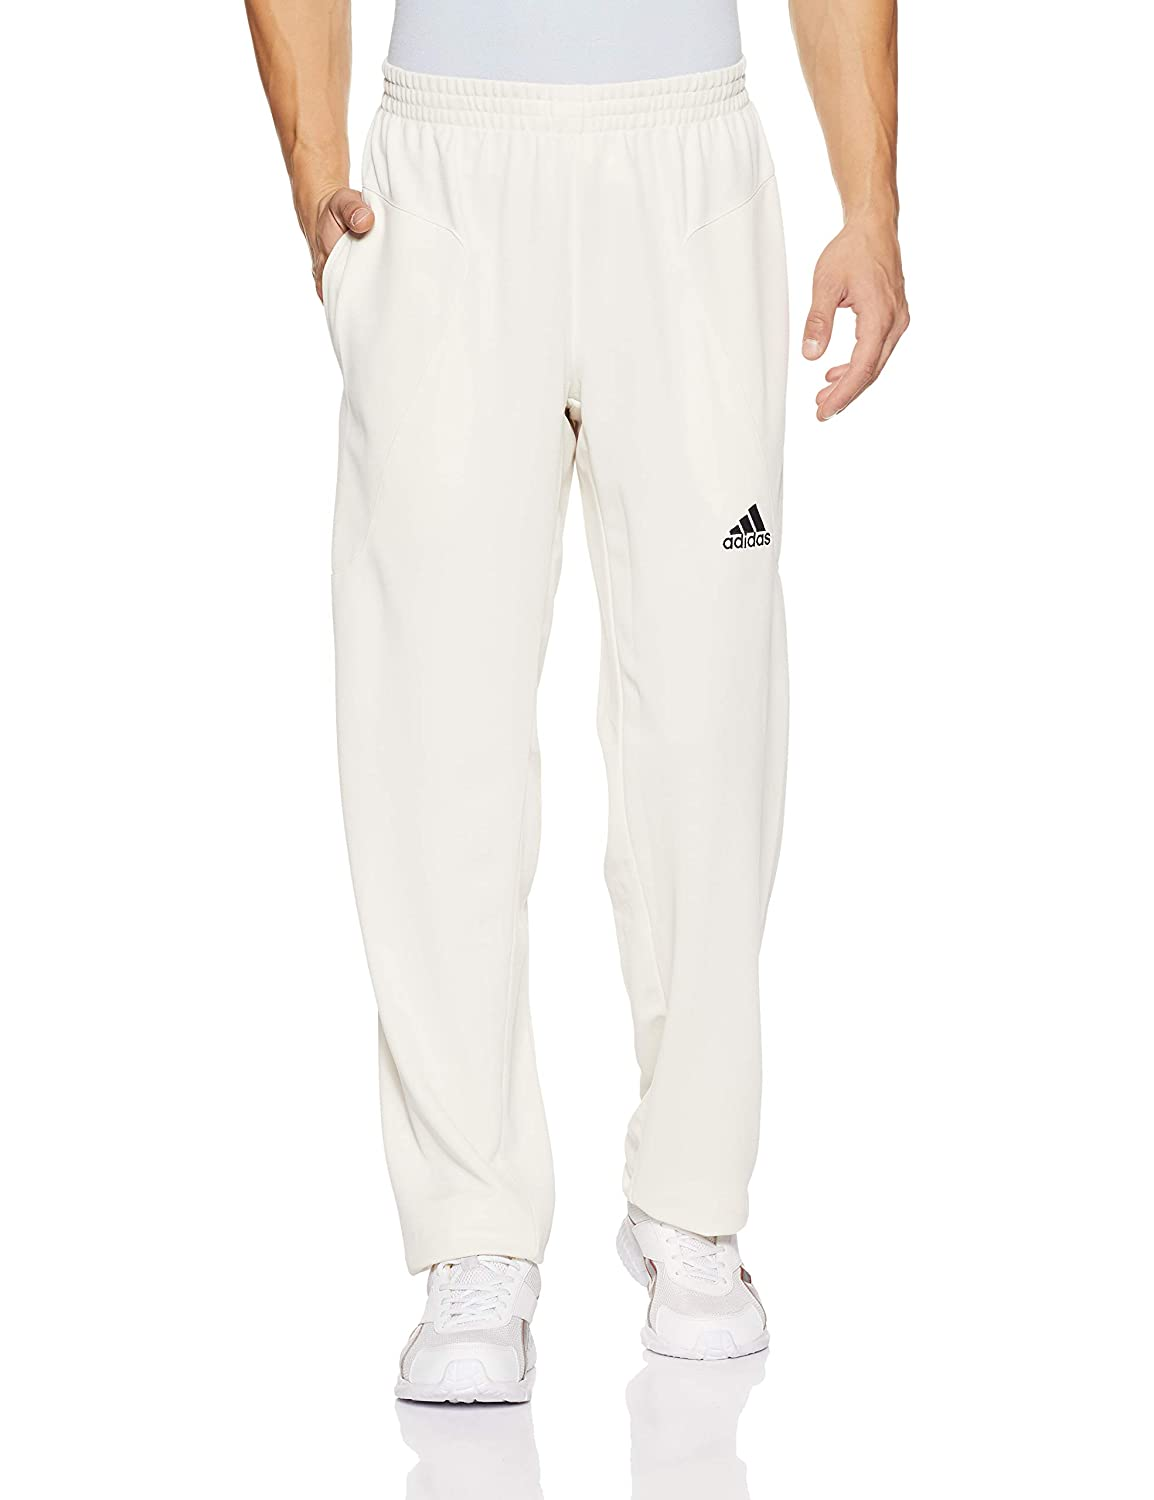 adidas Howzat Mens Cricket Whites Batting Bowling Pant Trouser White - 46' AJ451562